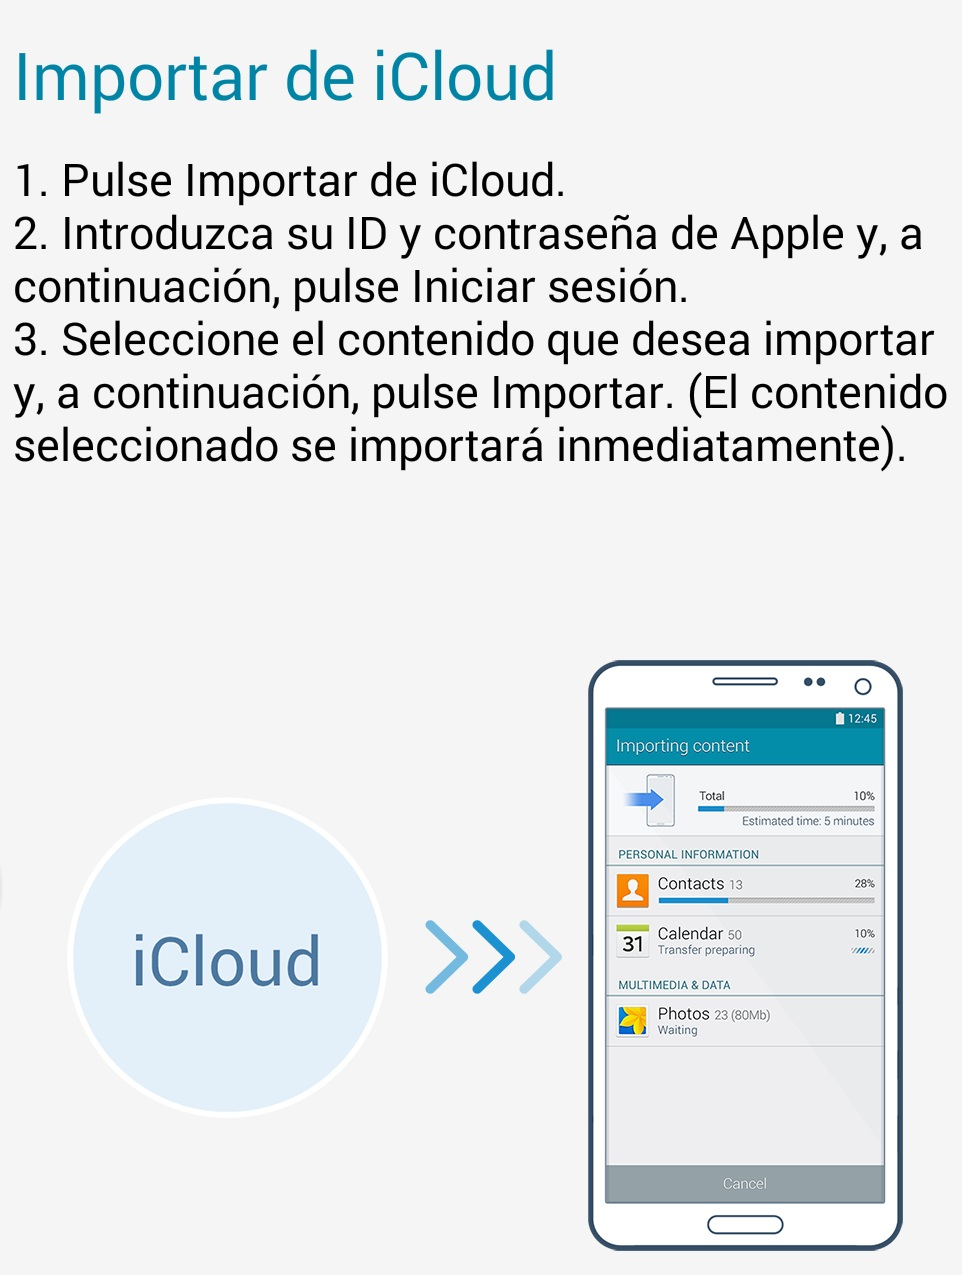 Samsung Smart Switch: iCloud (Android 4.x)